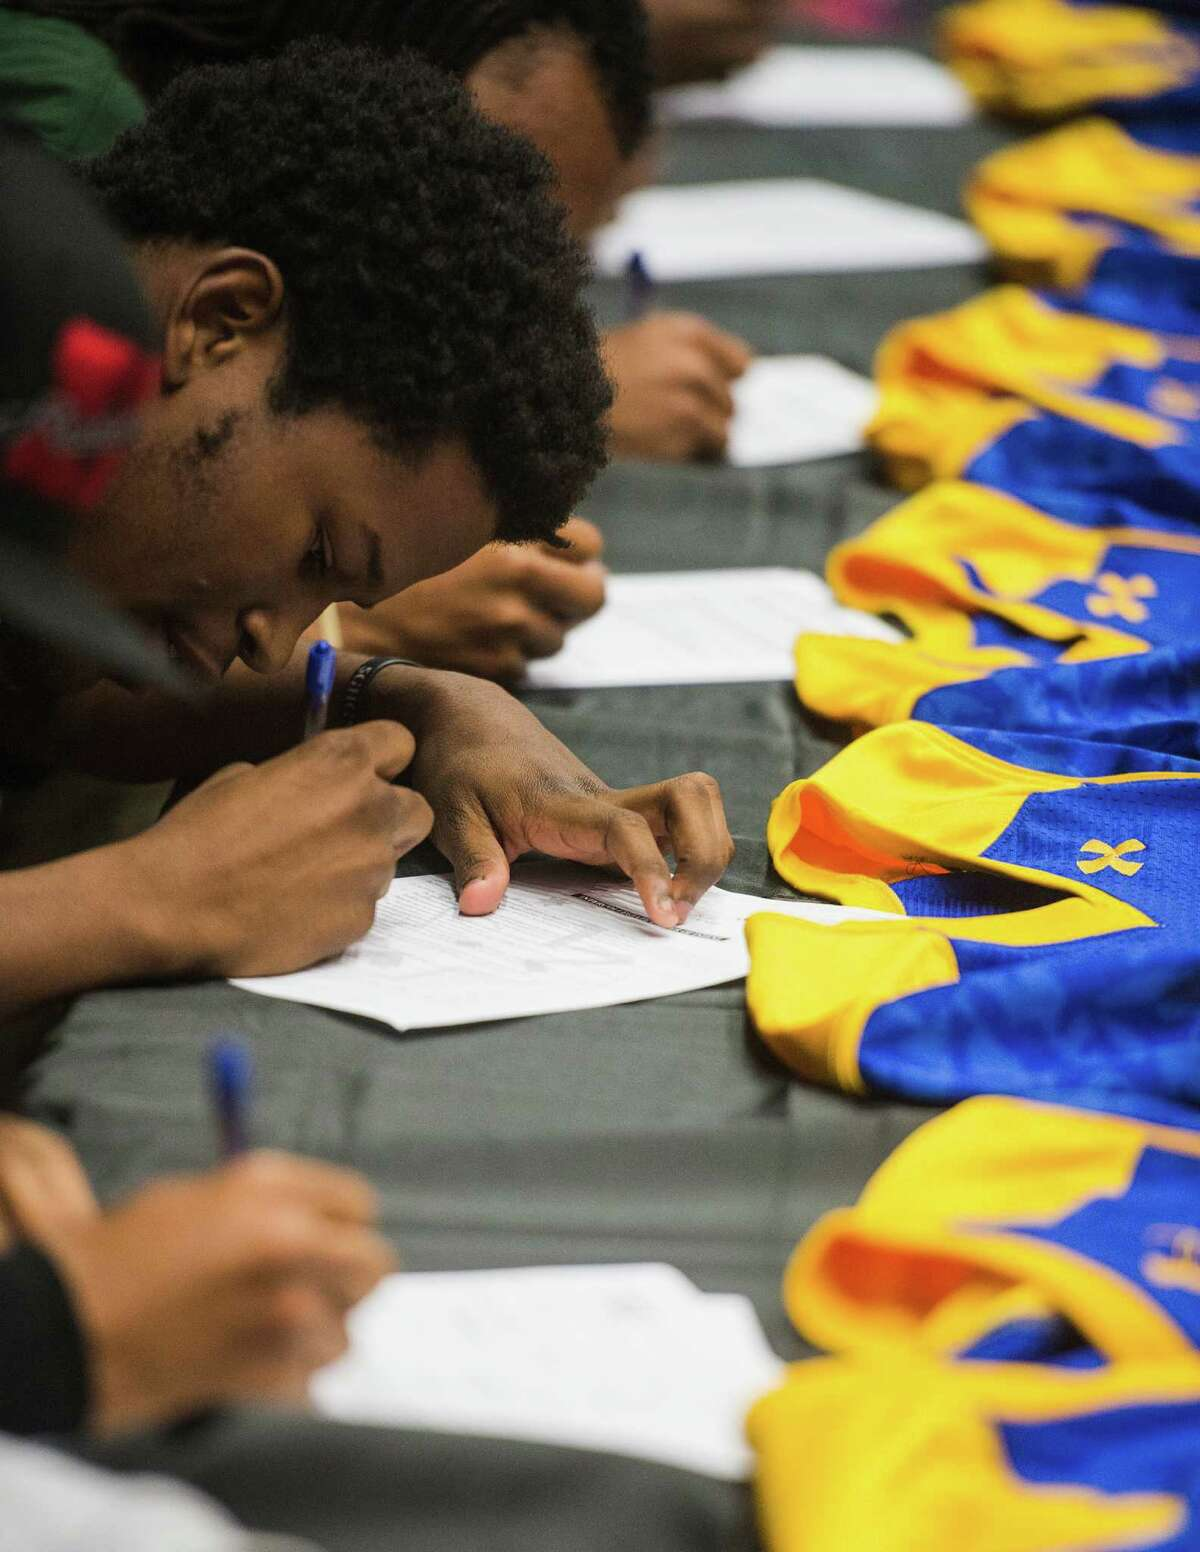 Beaumont ISD Ozen High School Graduation: 6 p.m. June 7 at the Montagne Center (File photo) Derrick Mayfield and other athletes sign their letters of intent Wednesday morning. Clifton J. Ozen High School held a ceremony for national signing day Wednesday morning. Nine student athletes signed letters of intent with various universities. Photo taken Wednesday, 2/5/14 Jake Daniels/@JakeD_in_SETX